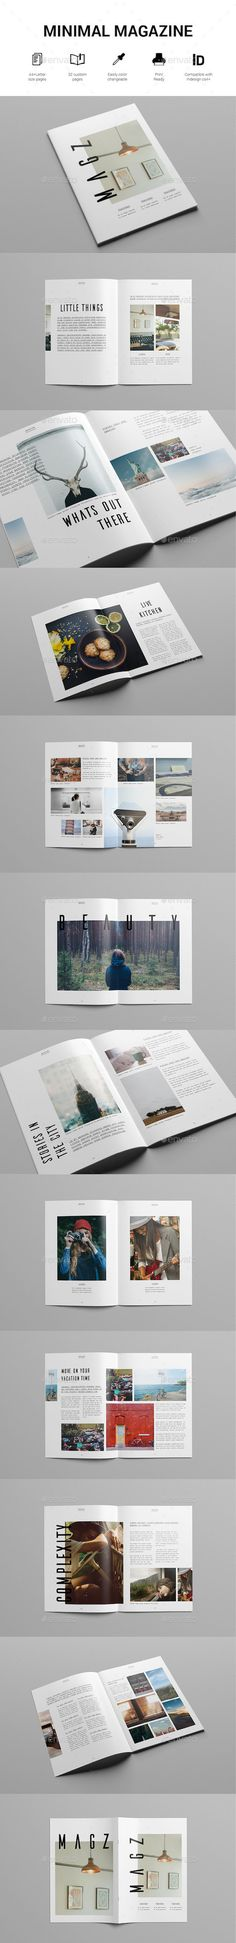 Minimal Lifestyle Magazine Template — InDesign INDD #style #minimal • Available here → https://graphicriver.net/item/minimal-lifestyle-magazine-template/13489075?ref=pxcr